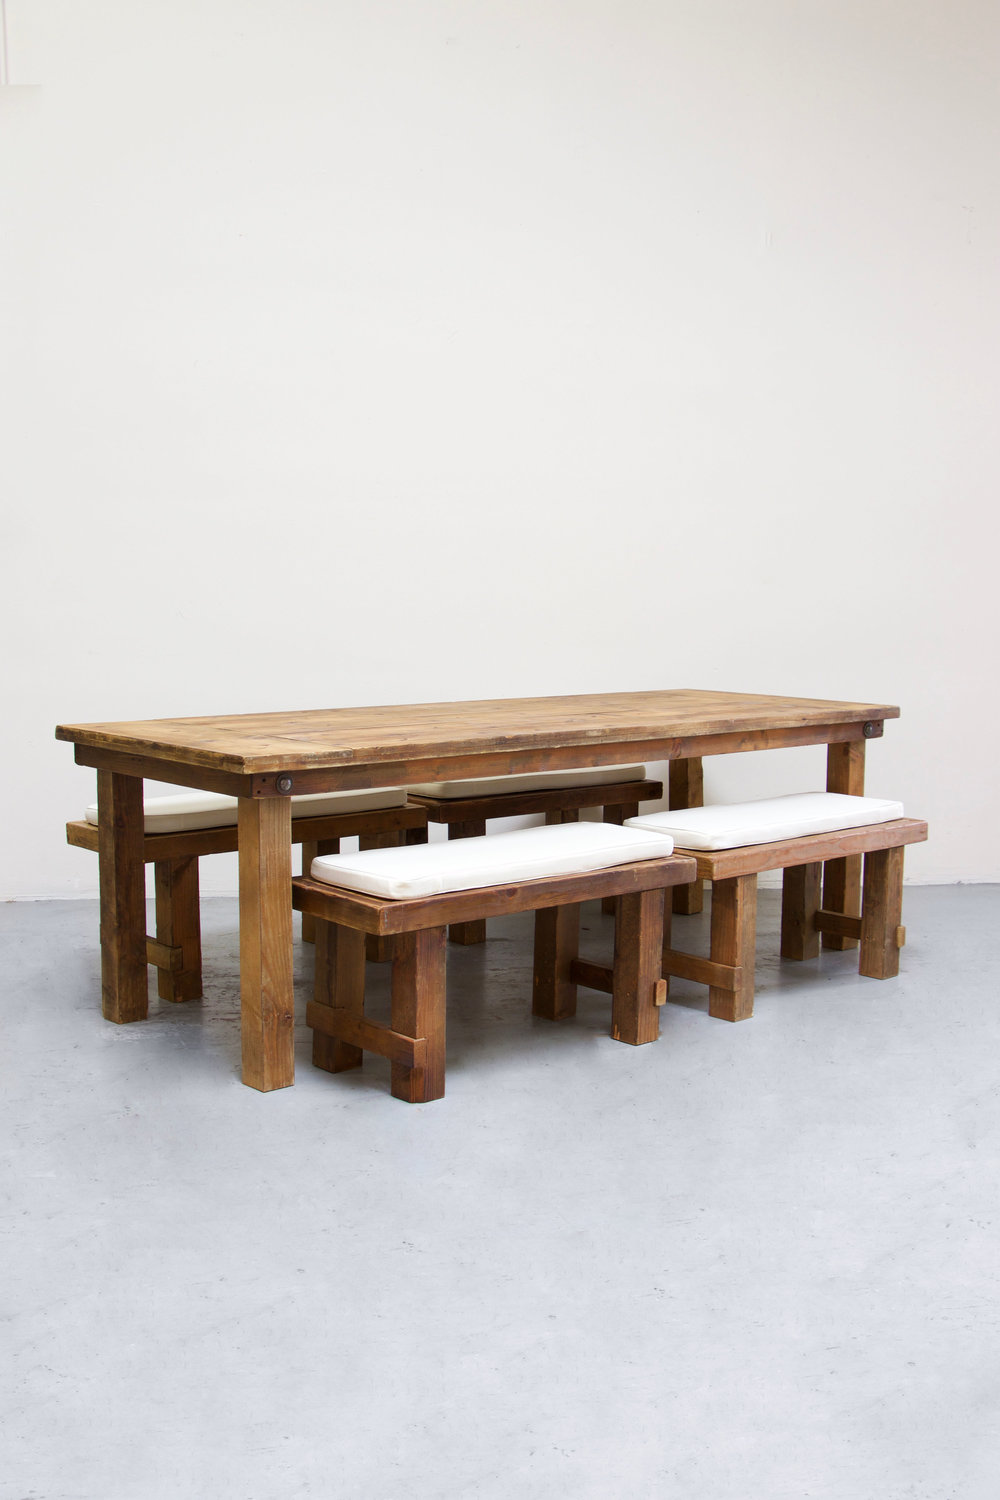 1 Honey Brown Farm Table w/ 4 Short Benches $145